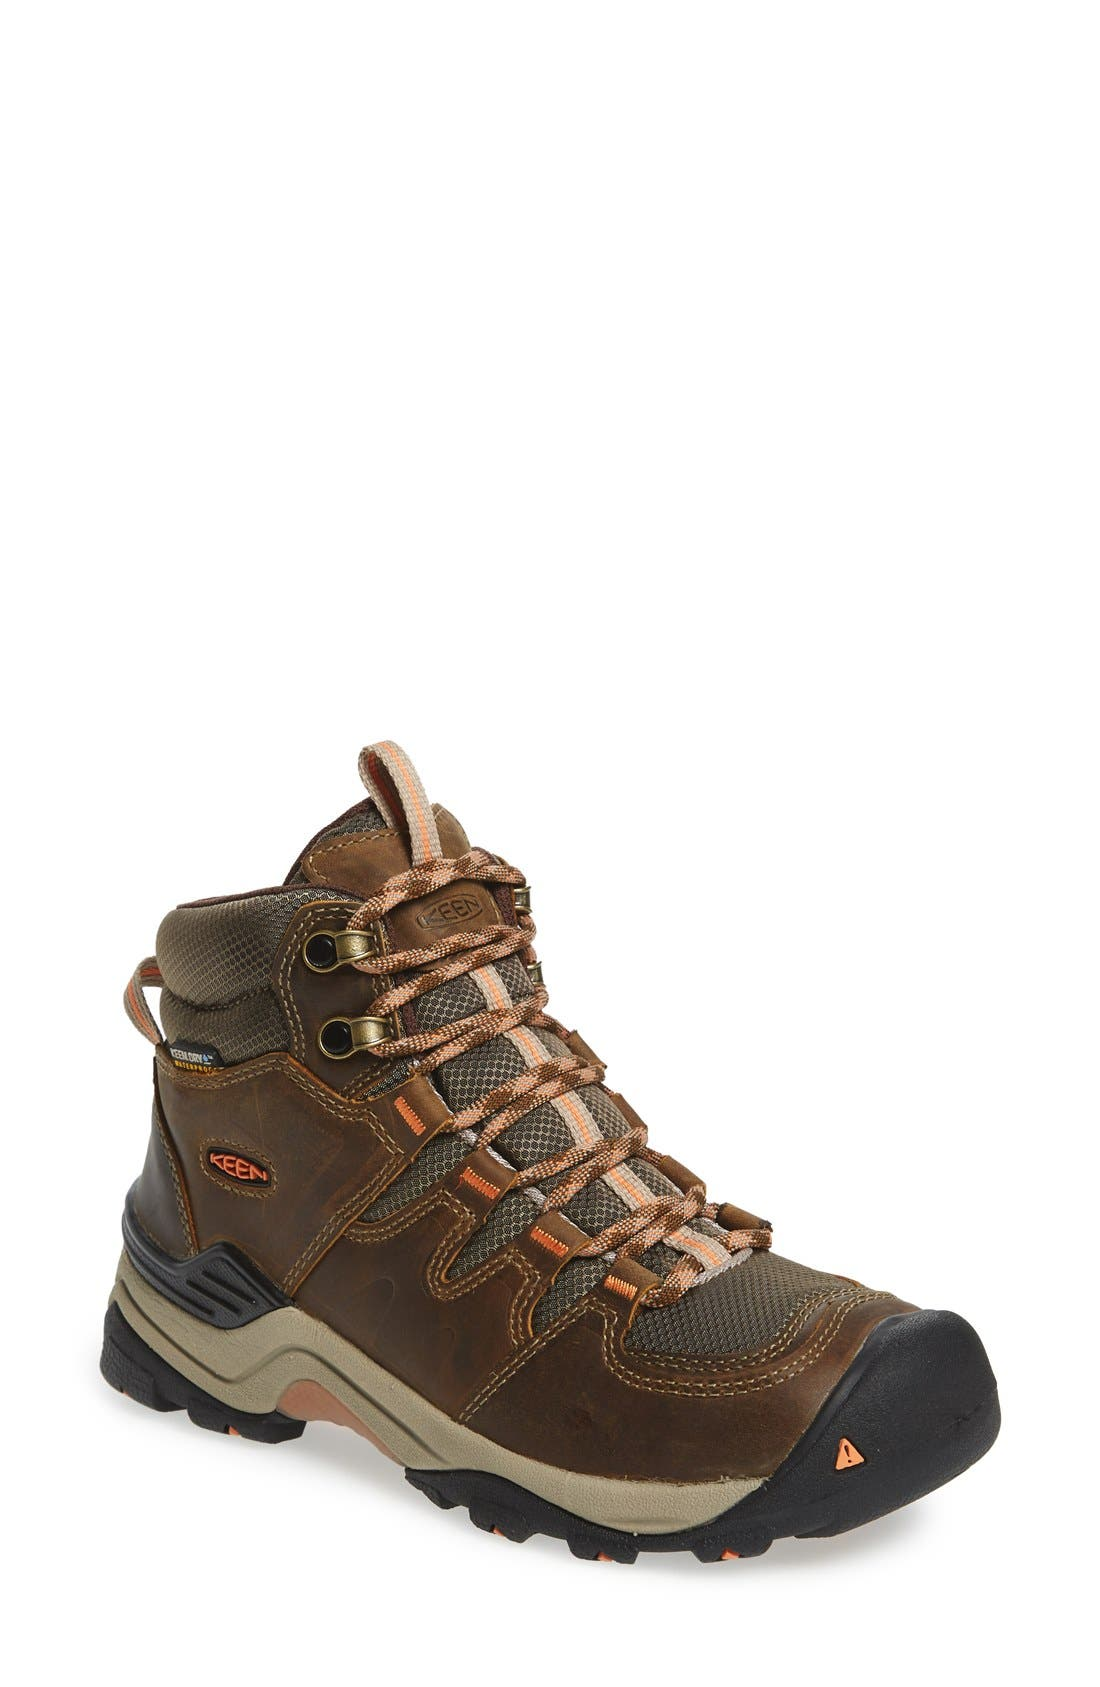 Alternate Image 1 Selected - Keen Gypsum II Mid Waterproof Hiking Boot (Women)